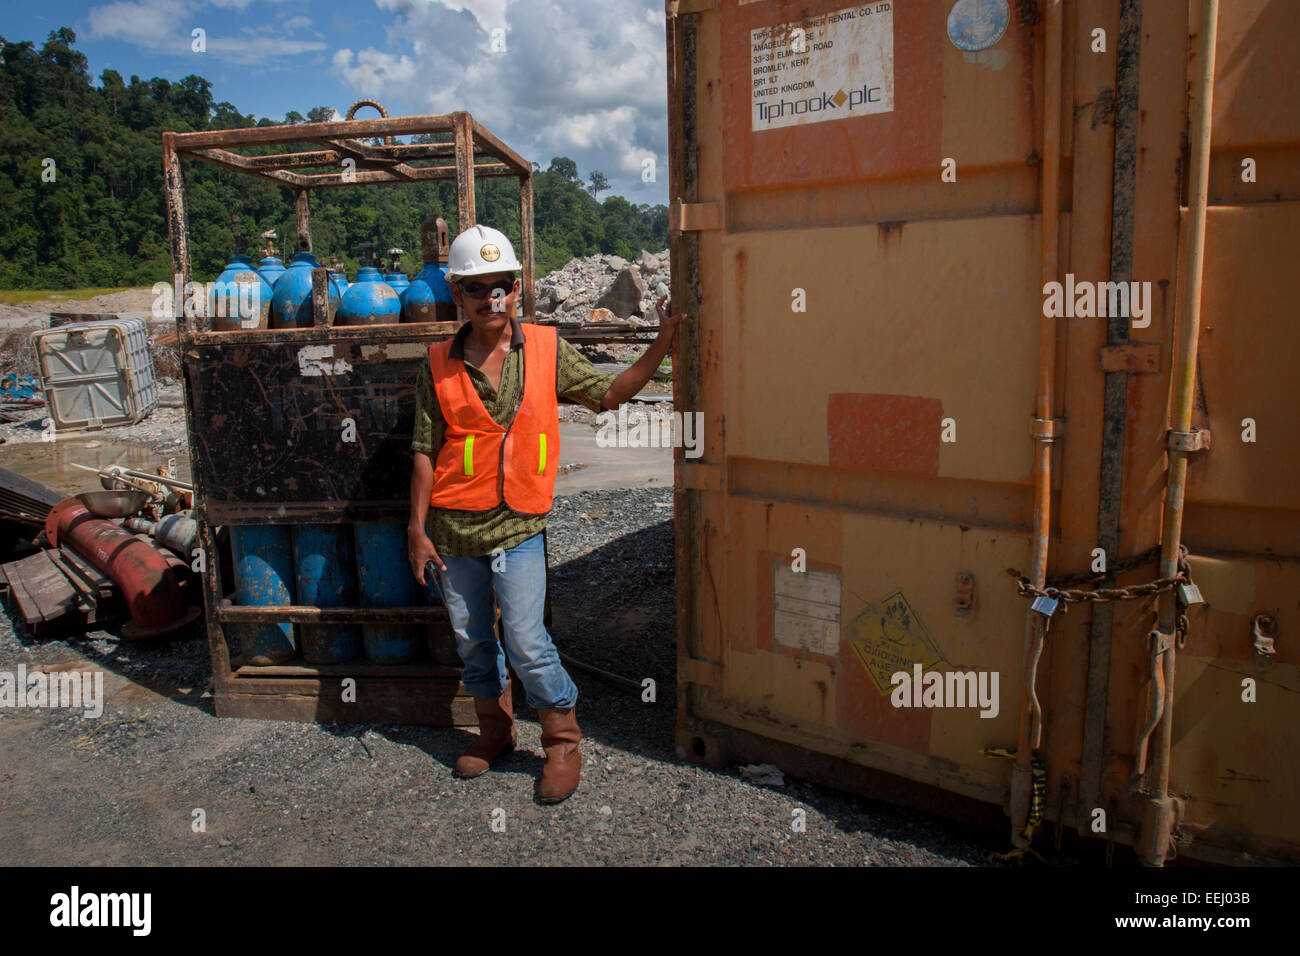 Portrait of a worker in industrial protective clothing at Kelian mine closure project in East Kalimantan, Indonesia. - Stock Image